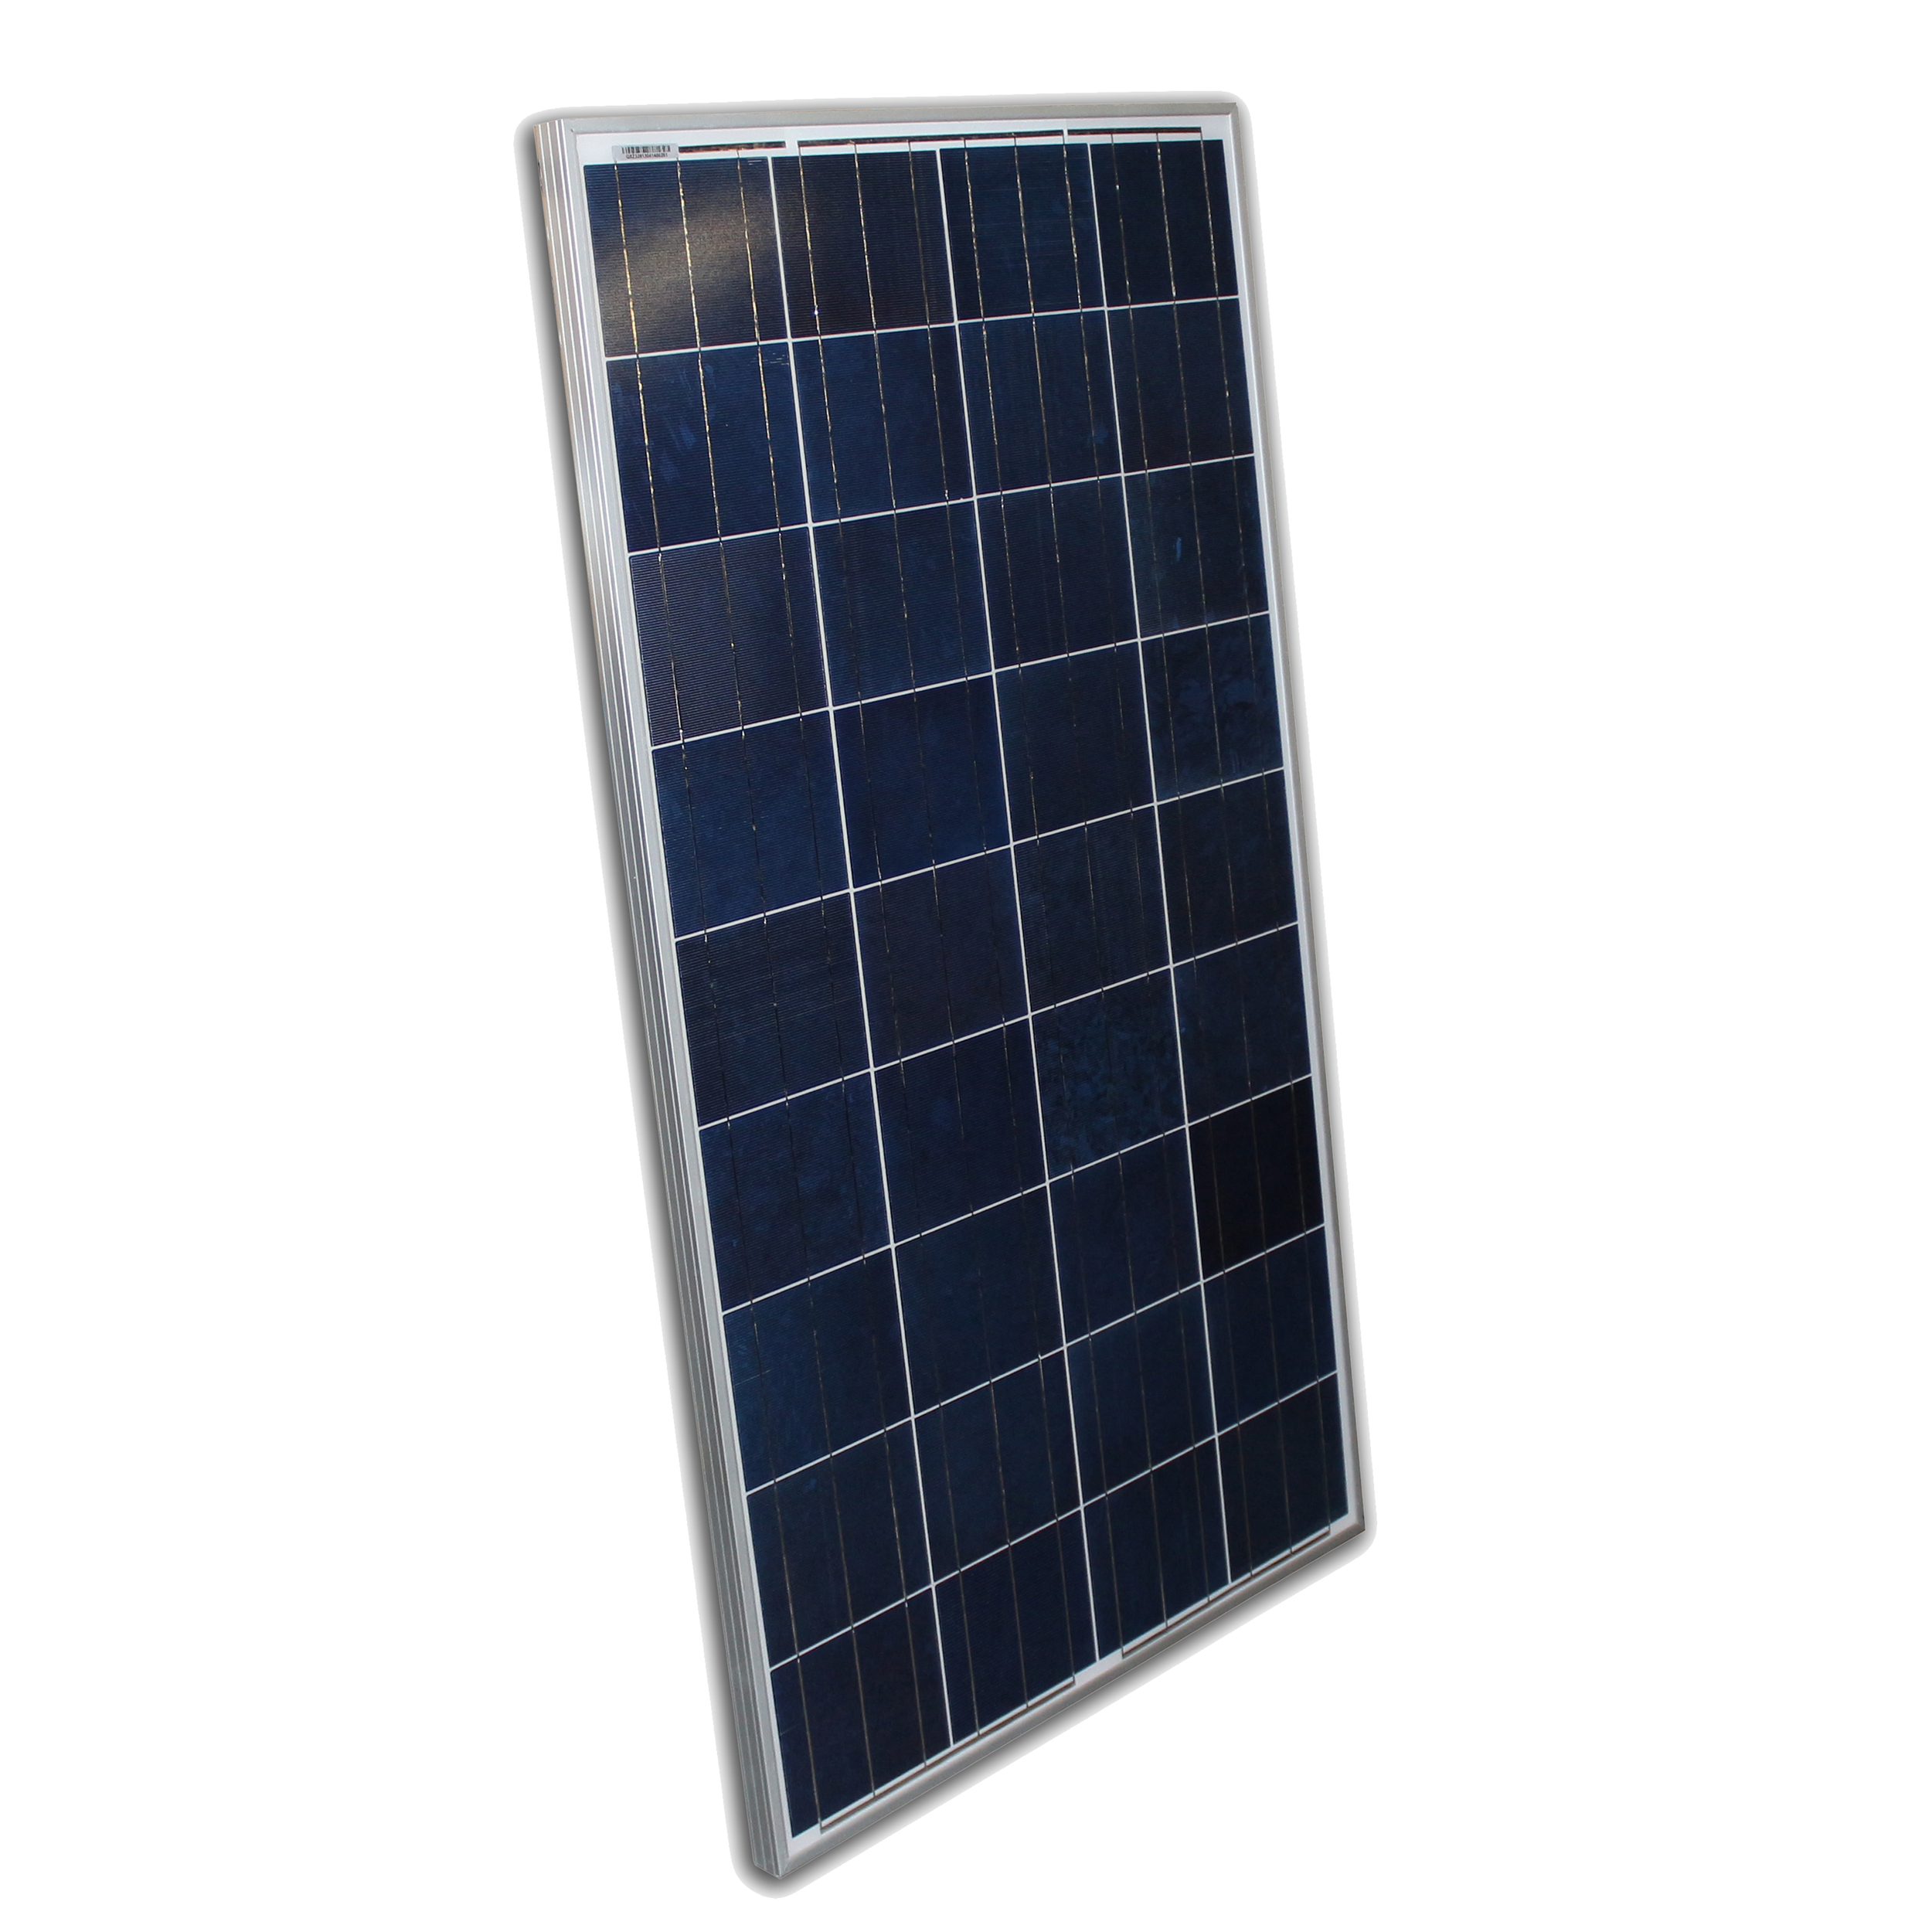 120 Watt 12 Volt Solar Panel Aims Power